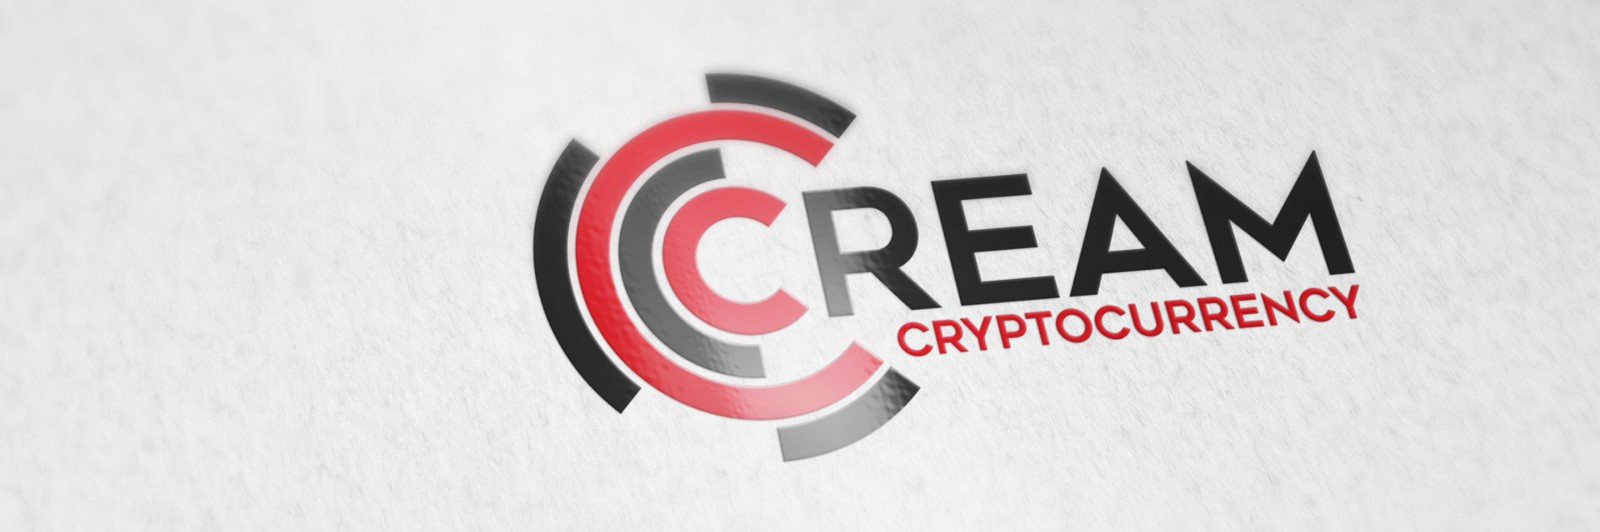 cream coin cryptocurrency